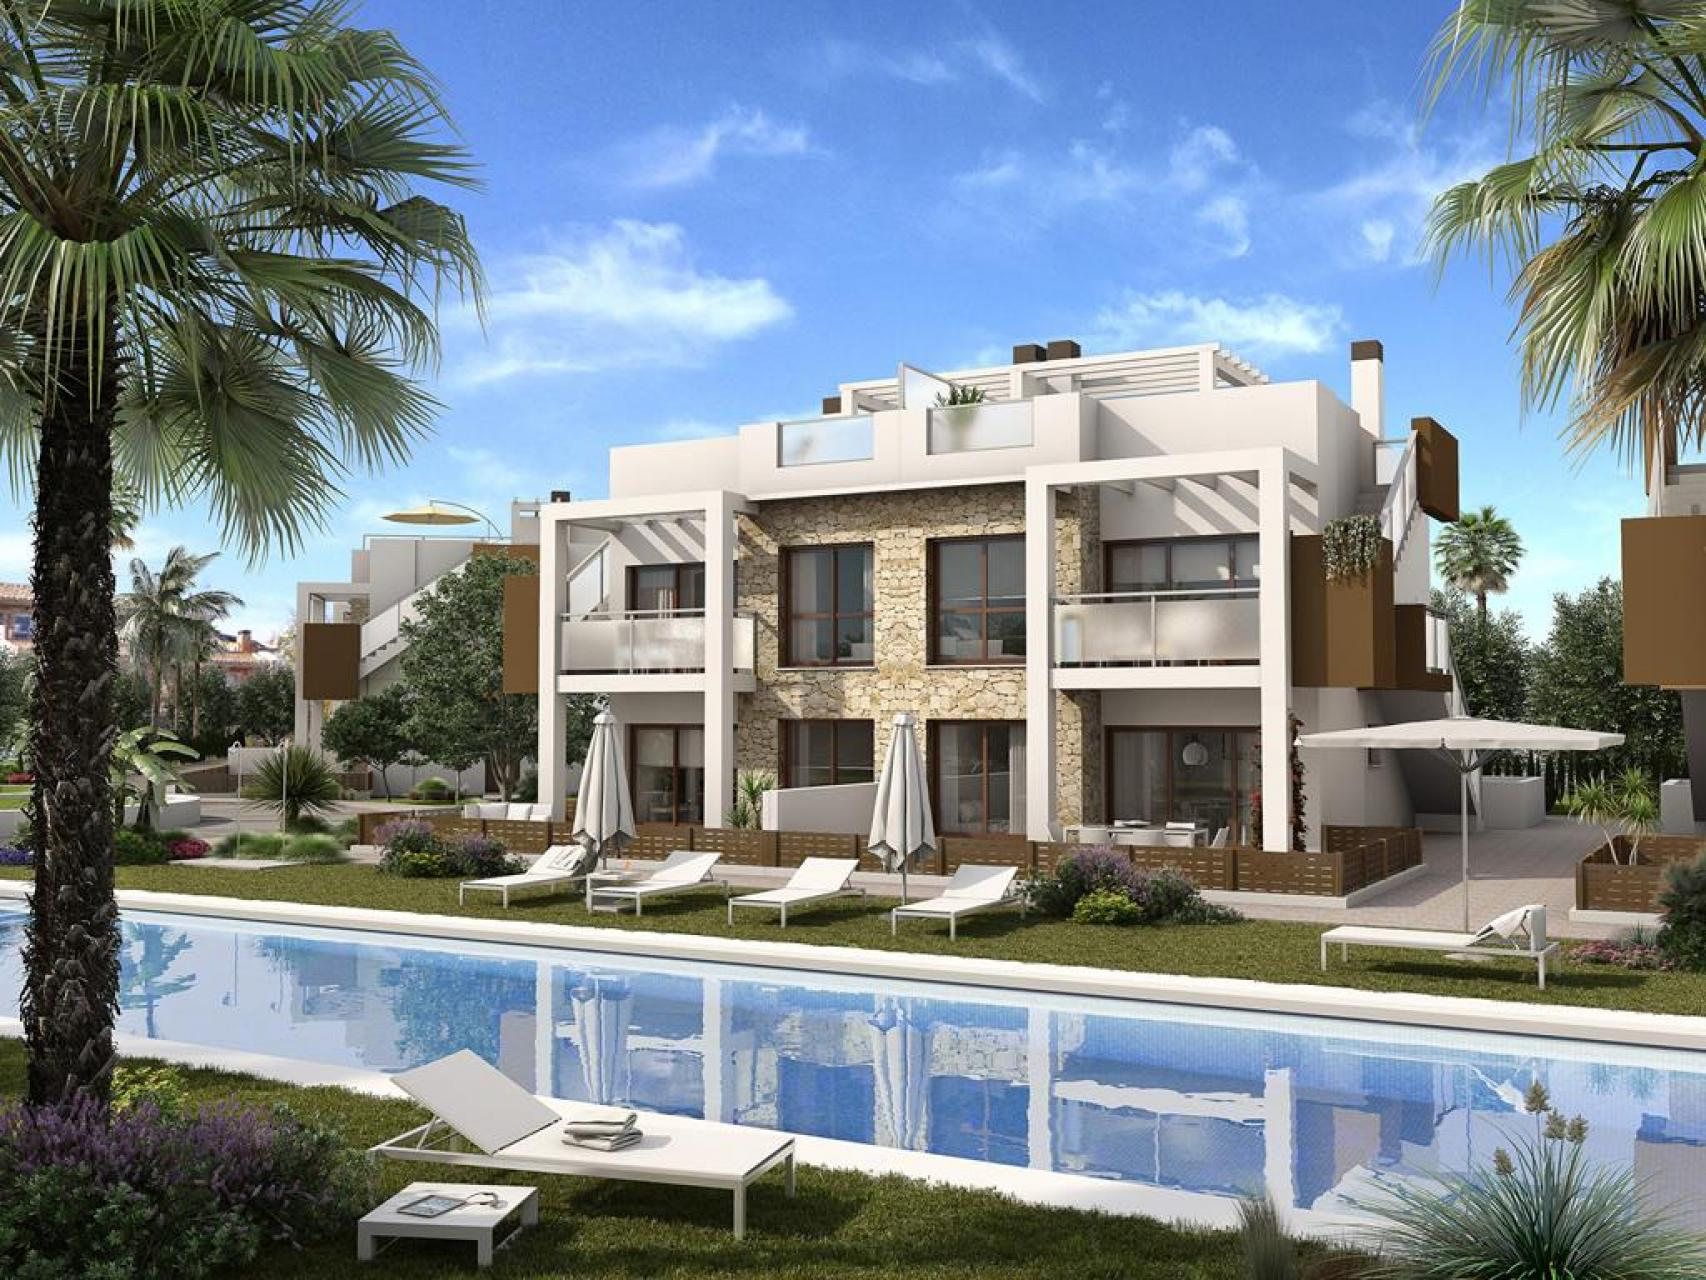 Ref:MP932 Apartment For Sale in Torrevieja